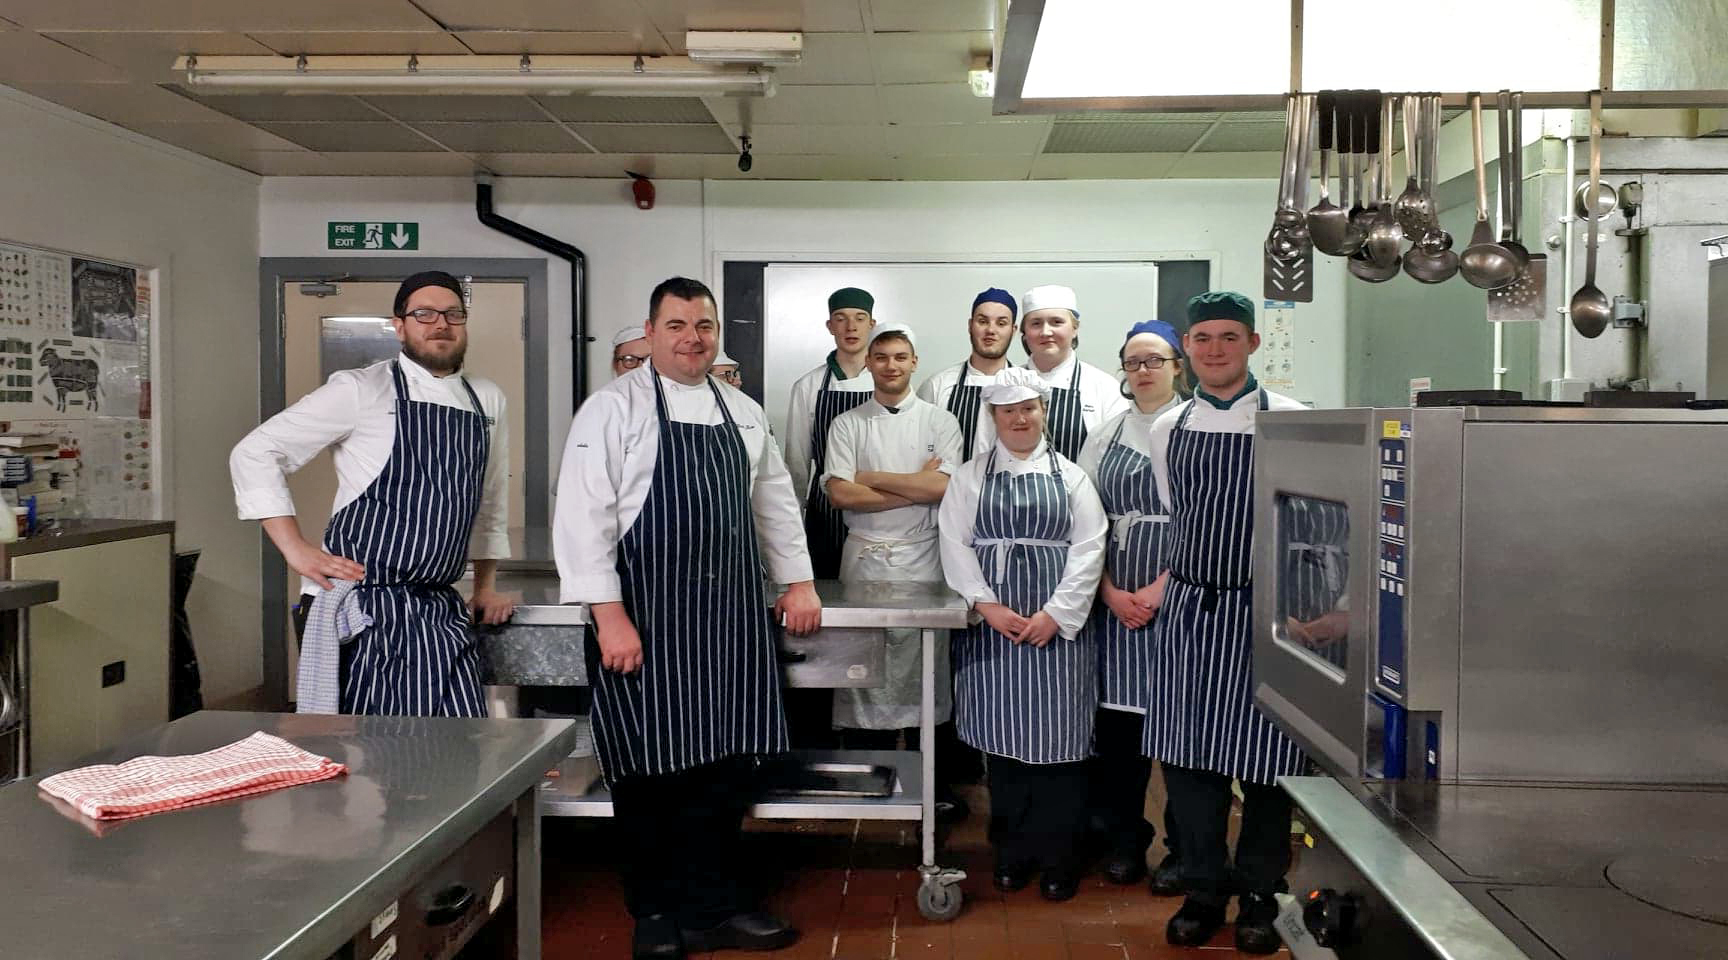 Vegan tasting menu served up by Isle of Wight College students